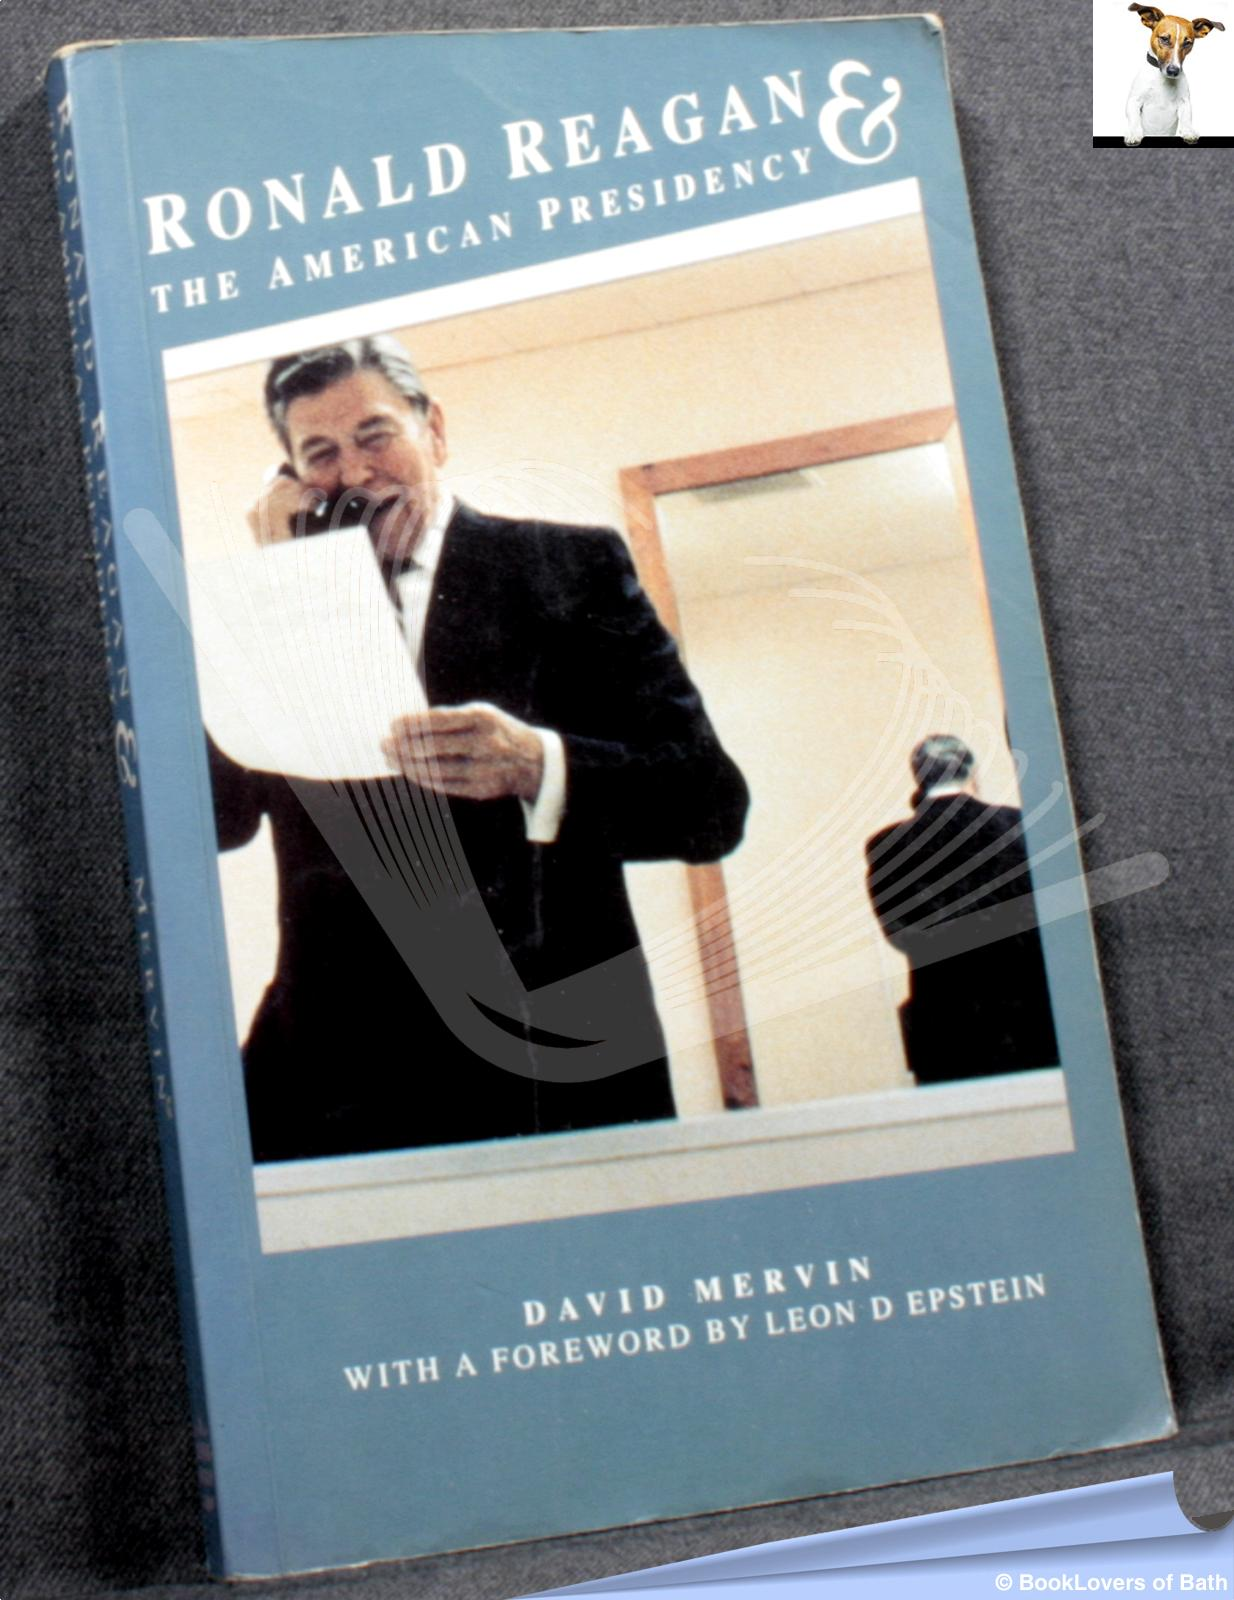 Ronald Reagan and the American Presidency - David Mervin